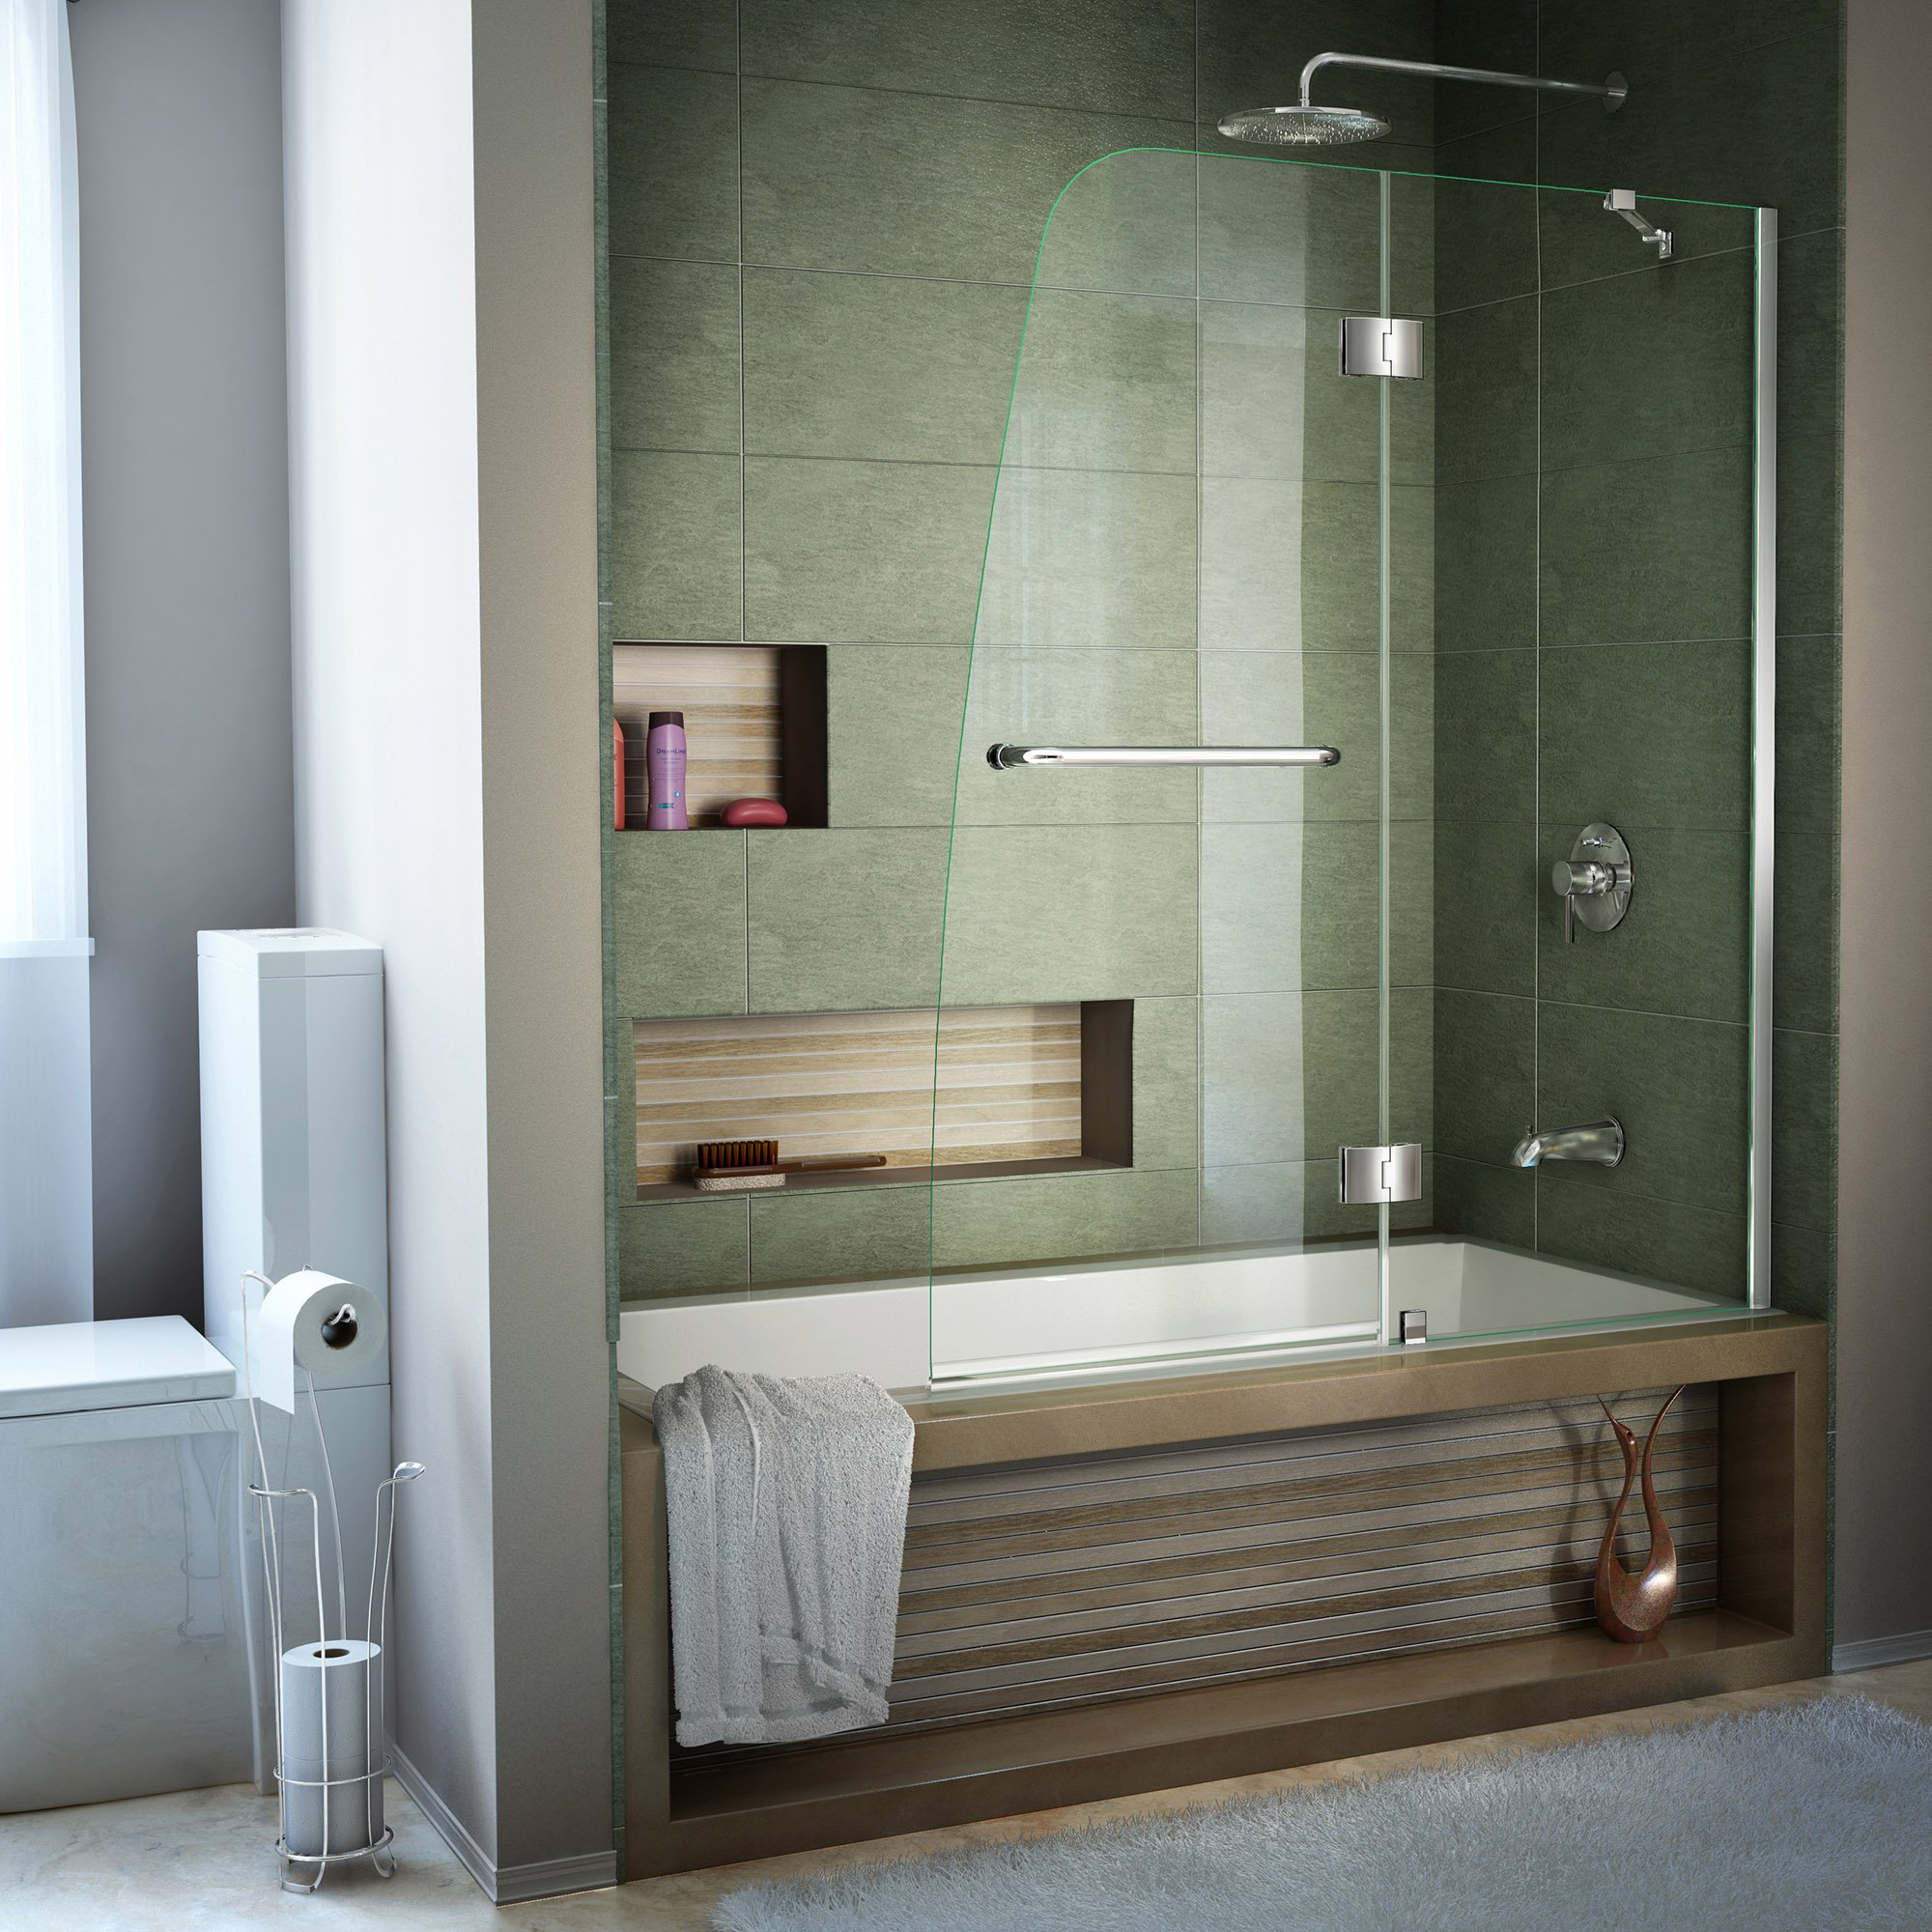 DreamLine Aqua 48 in. Width, Frameless Hinged Tub Door, 1/4'' Glass, Chrome Finish by DreamLine